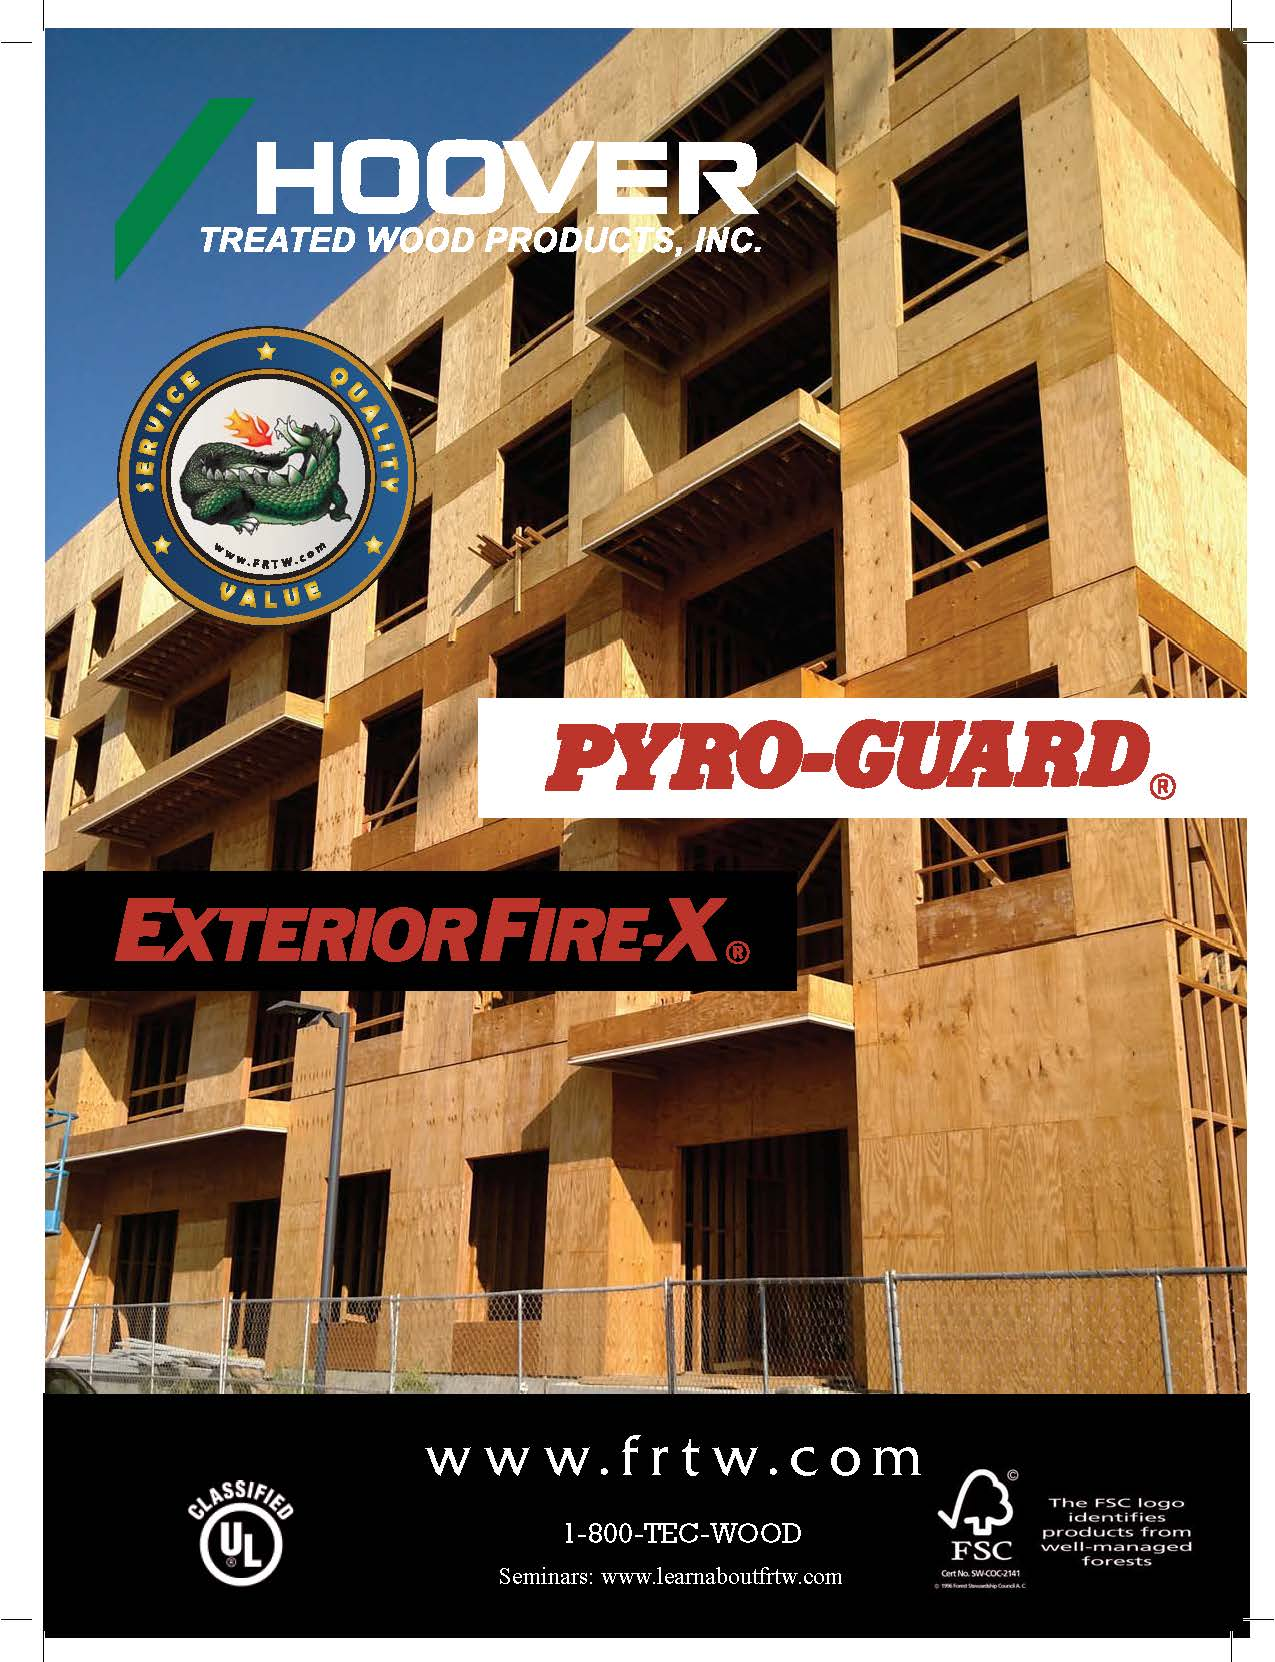 Pyro guard fire retardant treated lumber plywood weekes forest products for Exterior fire retardant treated wood